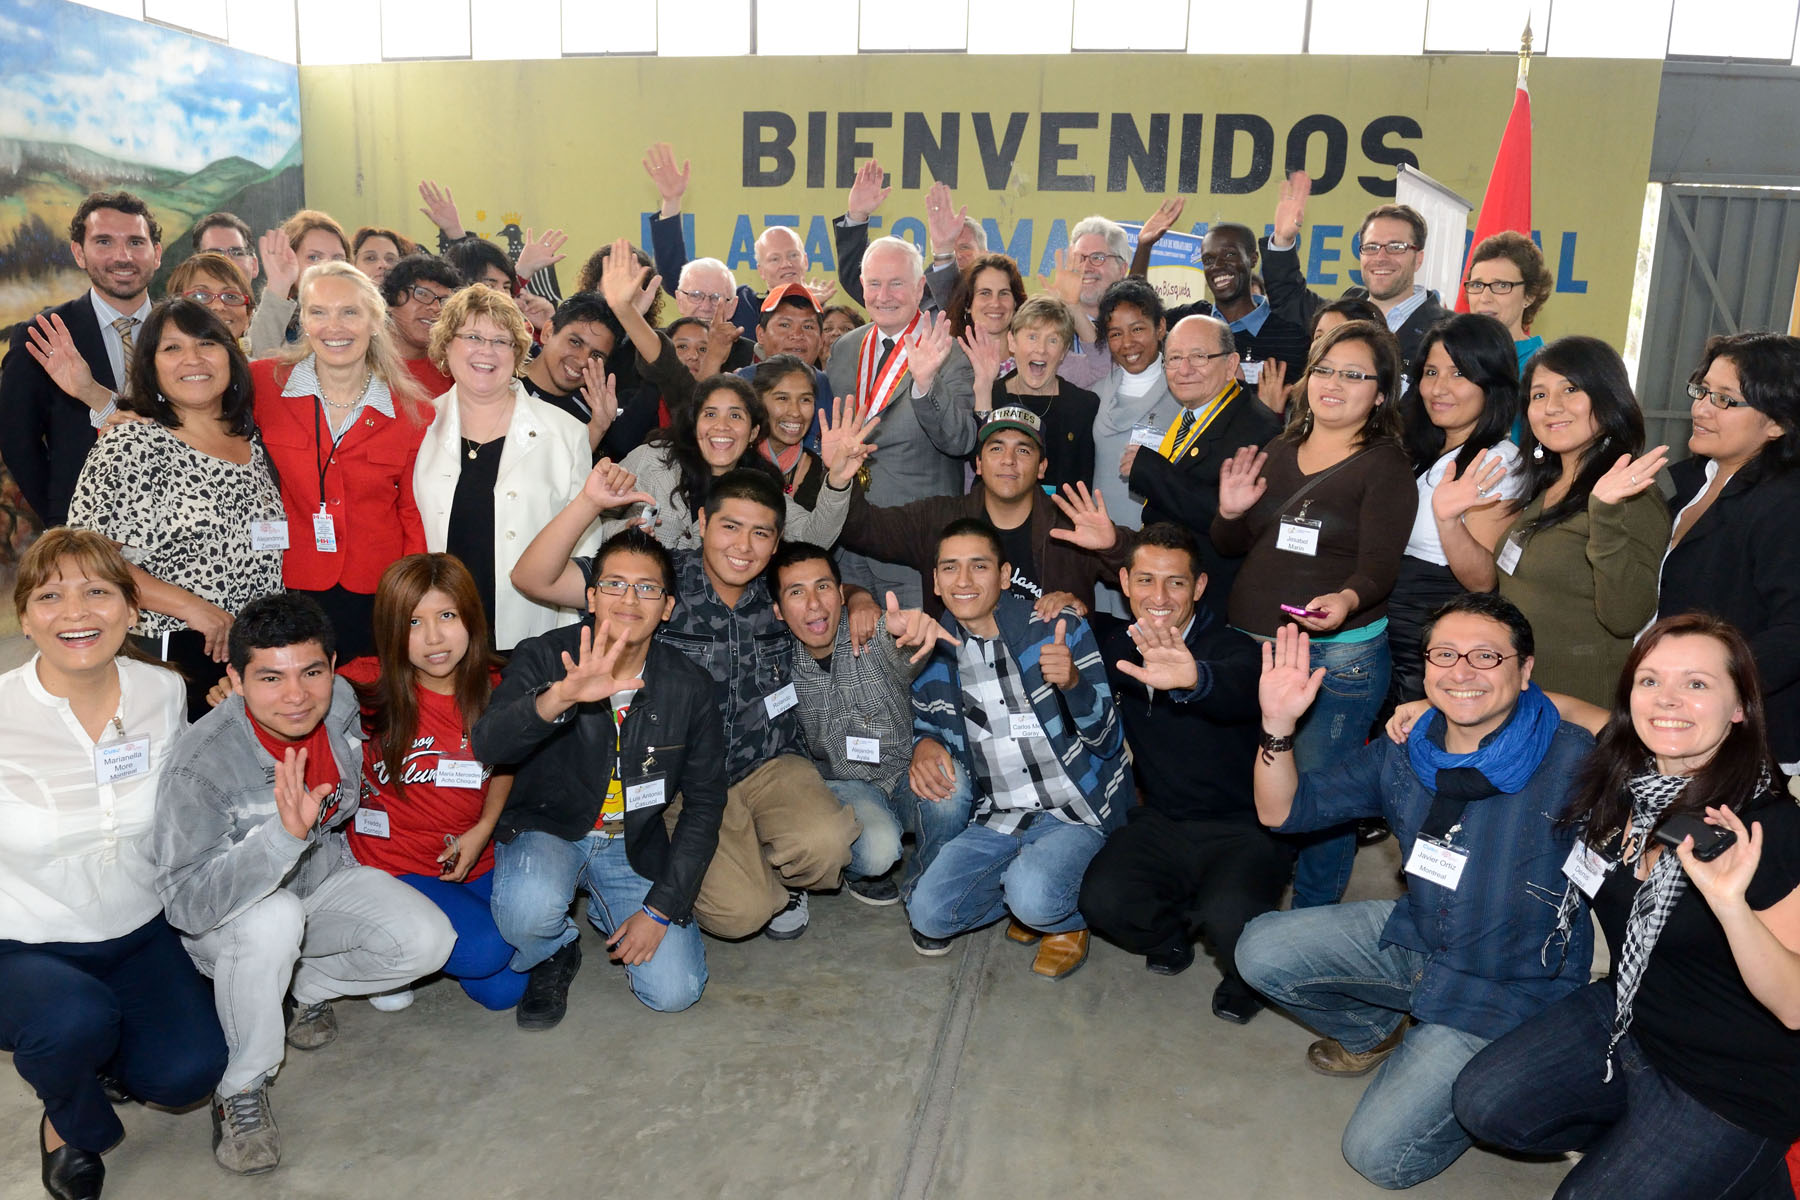 The Centro de Jóvenes y Empleo is supported by the Canadian International Development Agency (CIDA) through a Cuso project that aims to help disadvantaged youth between the ages of 15-29 develop vocational and entrepreneurial abilities and leadership skills.